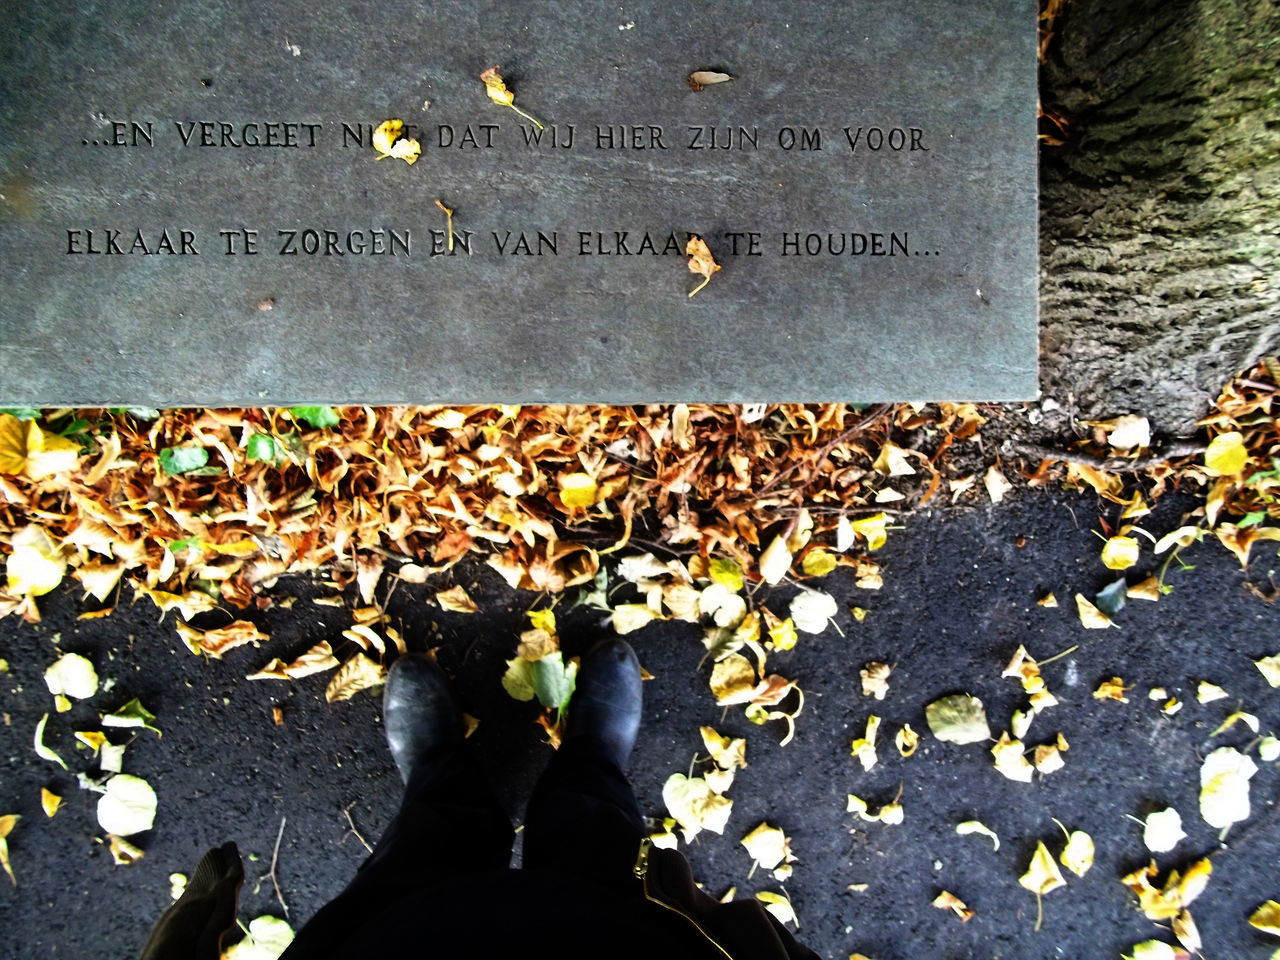 From My Point Of View Readingan Inscription on a Bench at the graveyard Translattion :. ..... and don' t forget that we we are here to help and love each other....